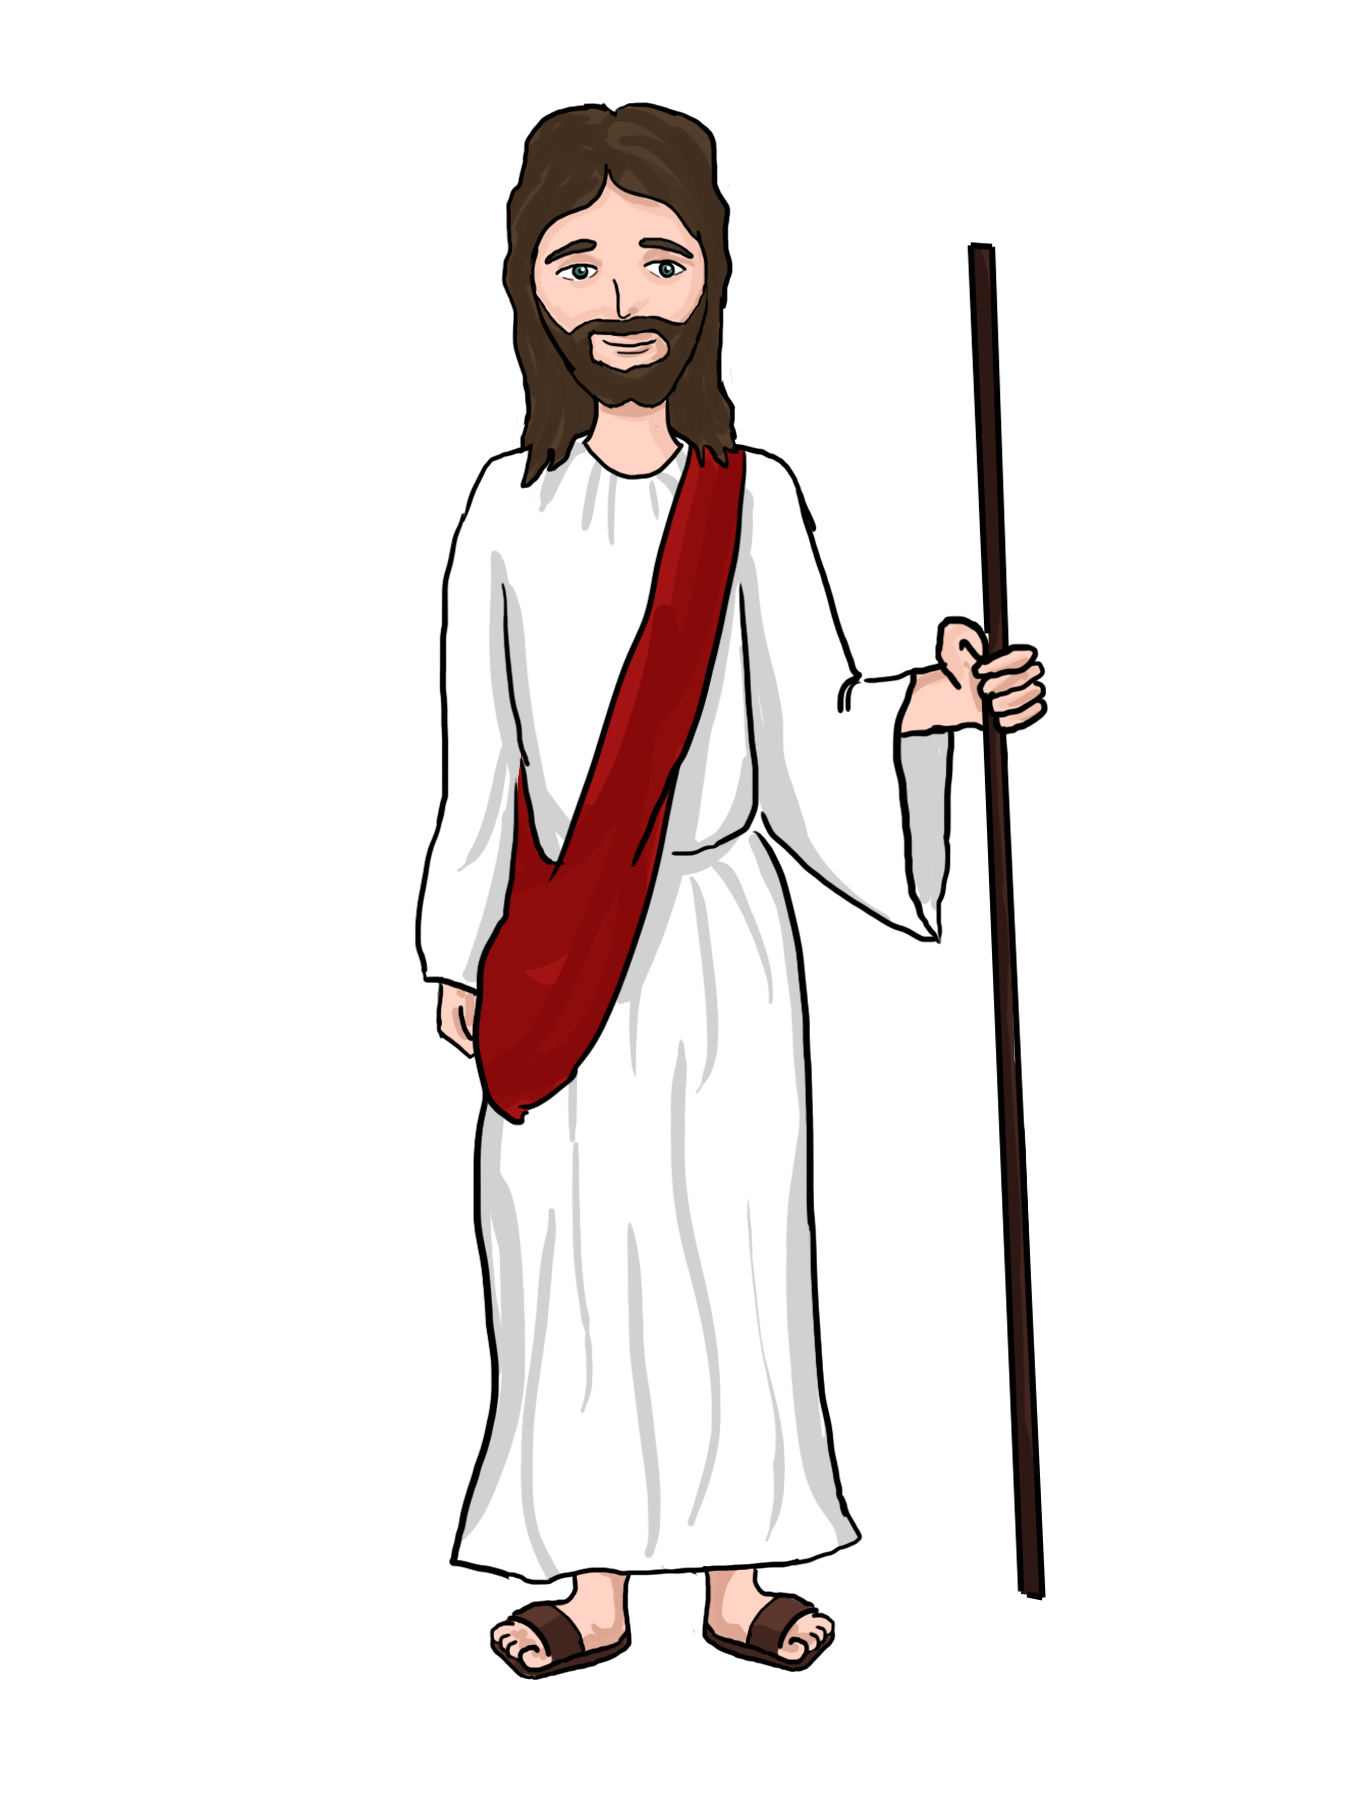 Clipartlord Com Exclusive Do You Need A Jesus Christ Clip Art For